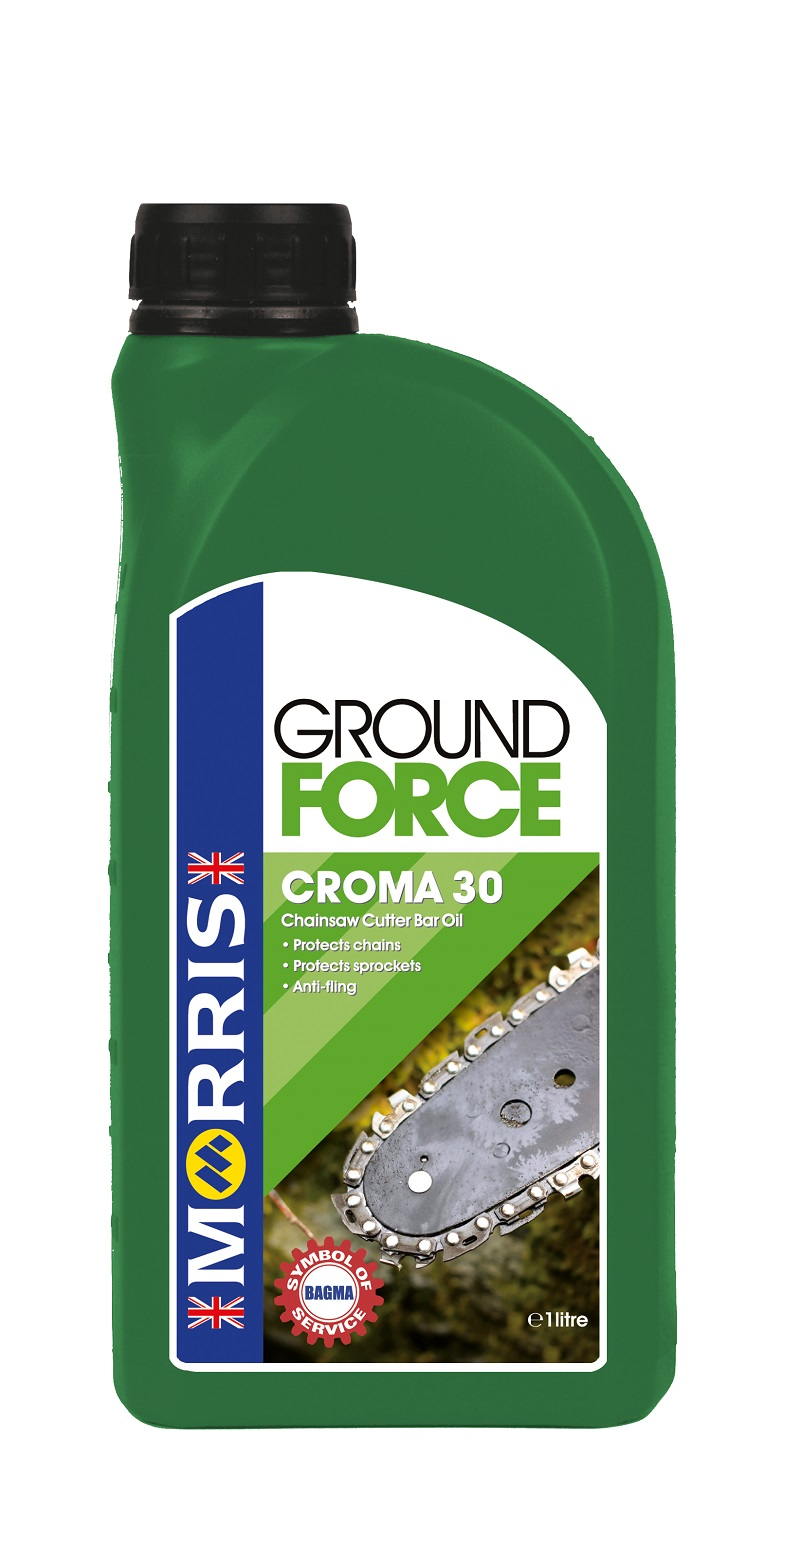 Ground Force Croma 30 Chain Saw Oil